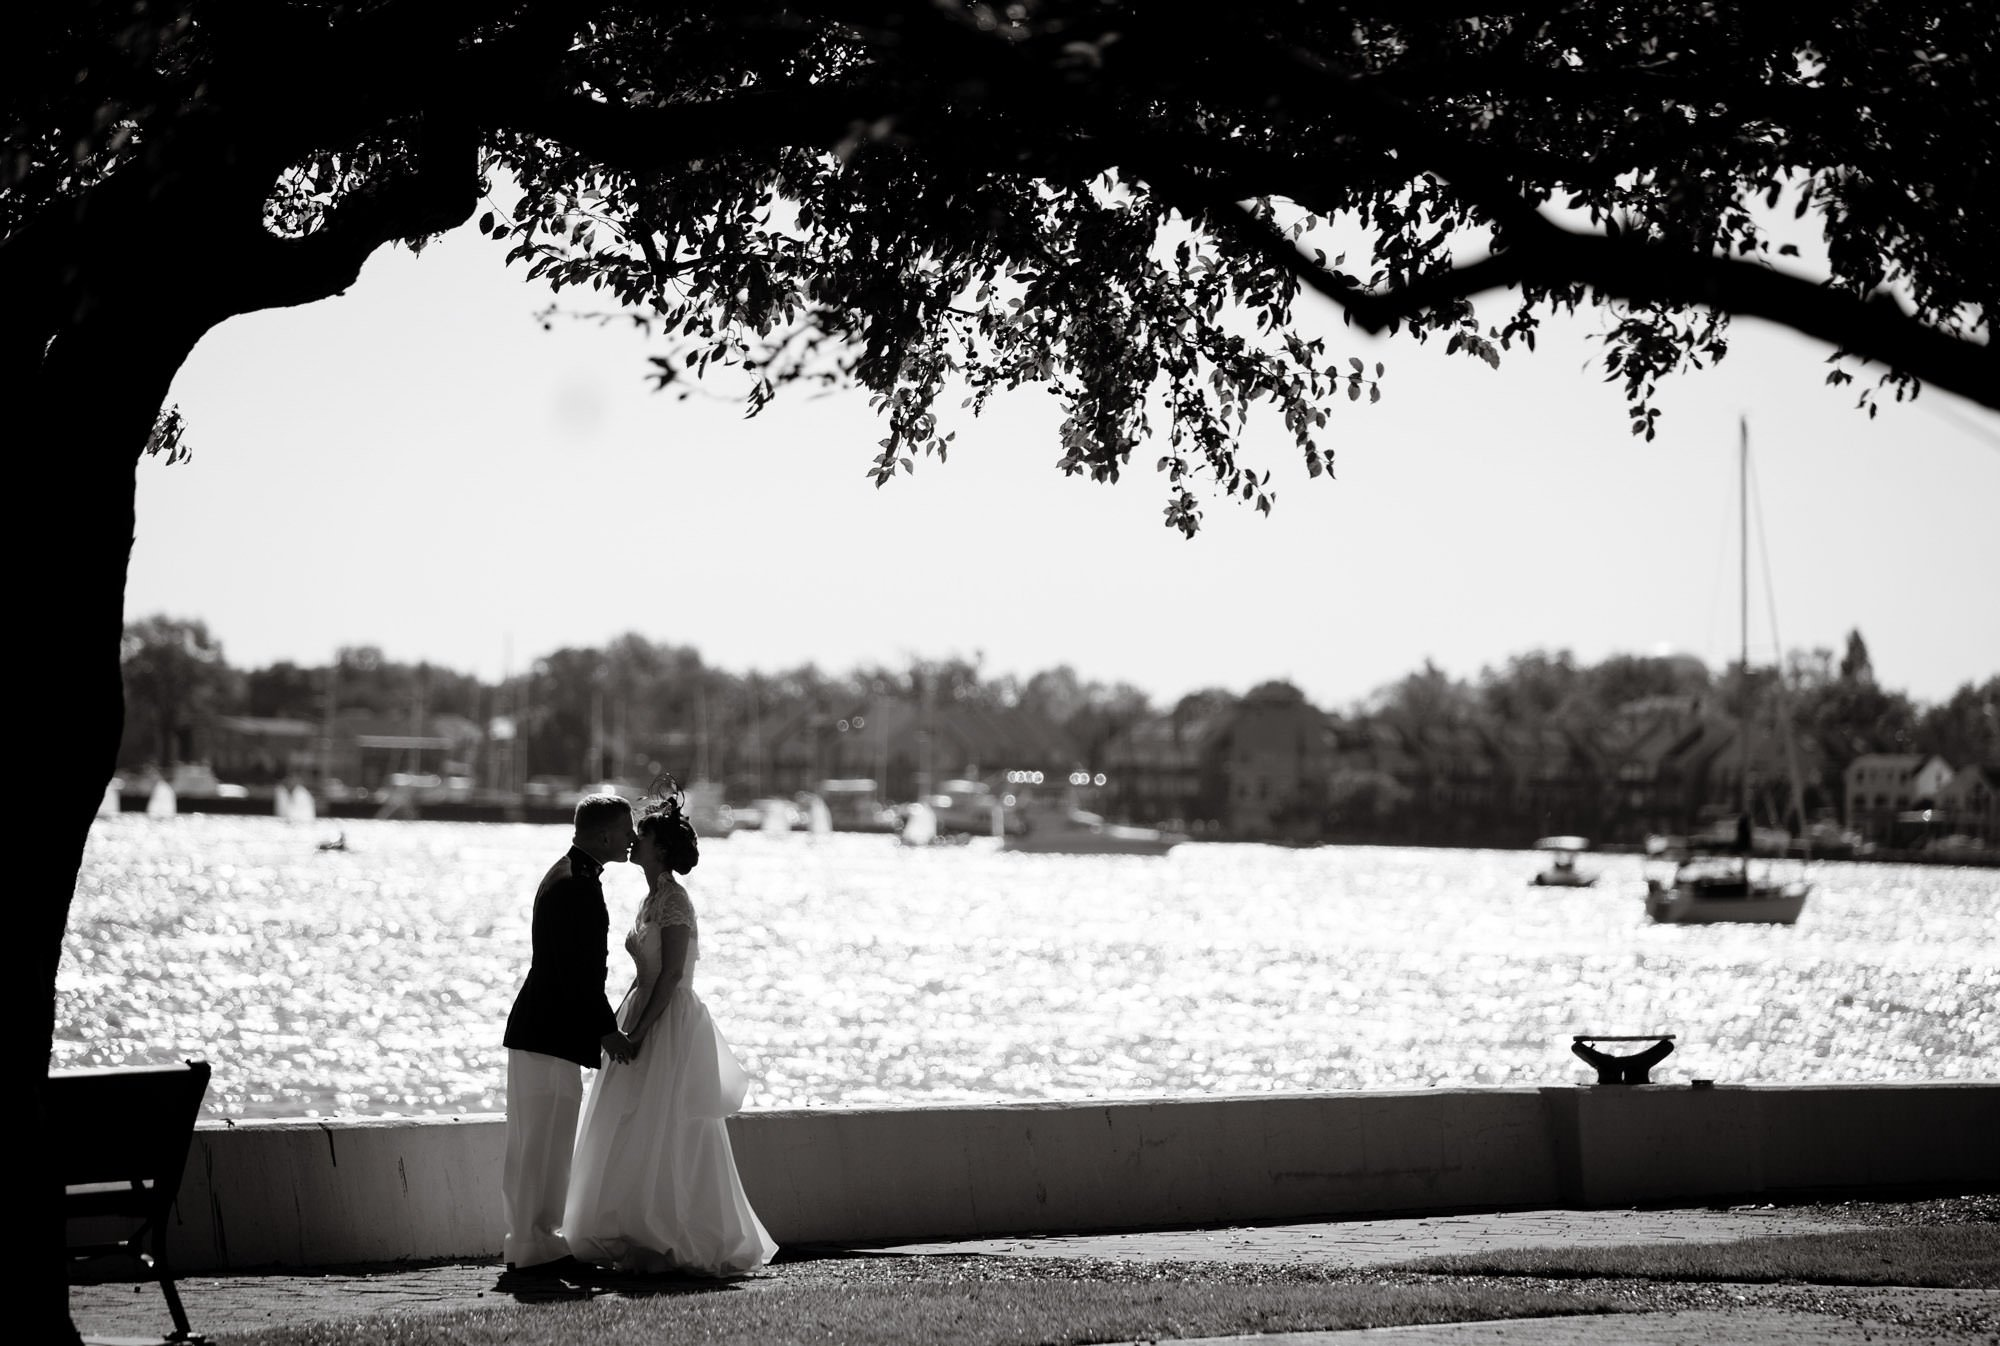 The bride and groom kiss at the Annapolis Naval Academy.